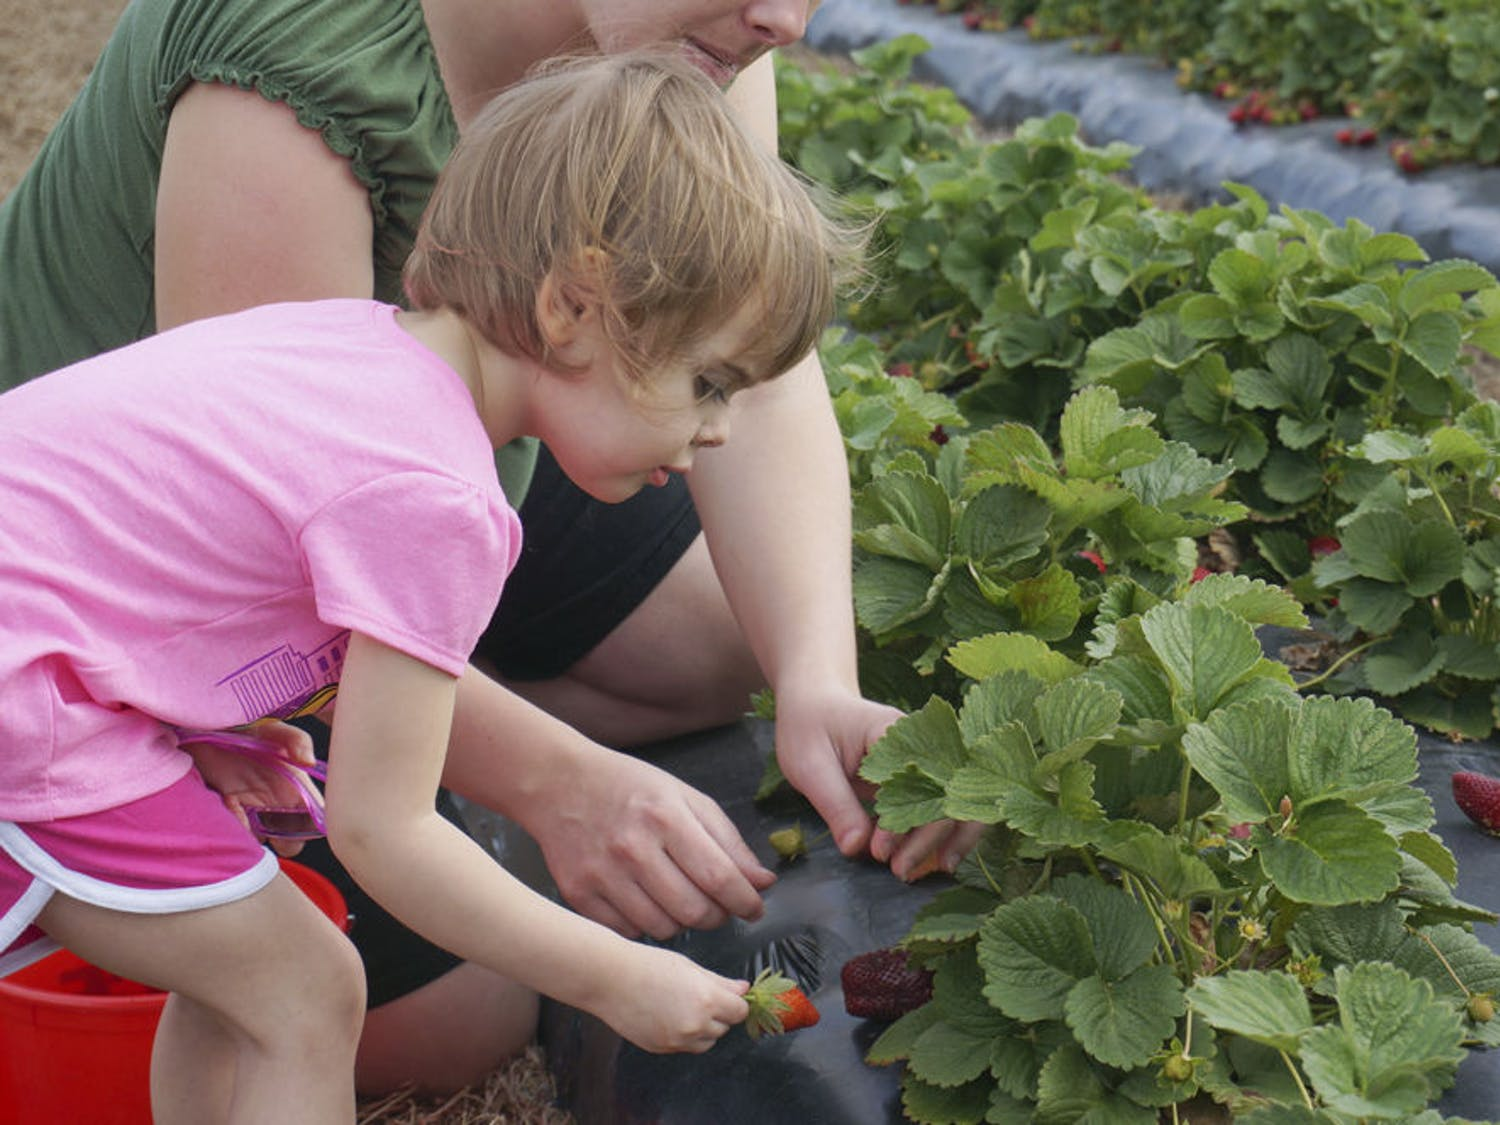 Abby Kirksy, 2, picks strawberries for the first time with her mother, Melissa Kirksy, on Brown's Farm in Hawthorne on Wednesday. Kirsky, from Starke, said it was their first time on the farm.